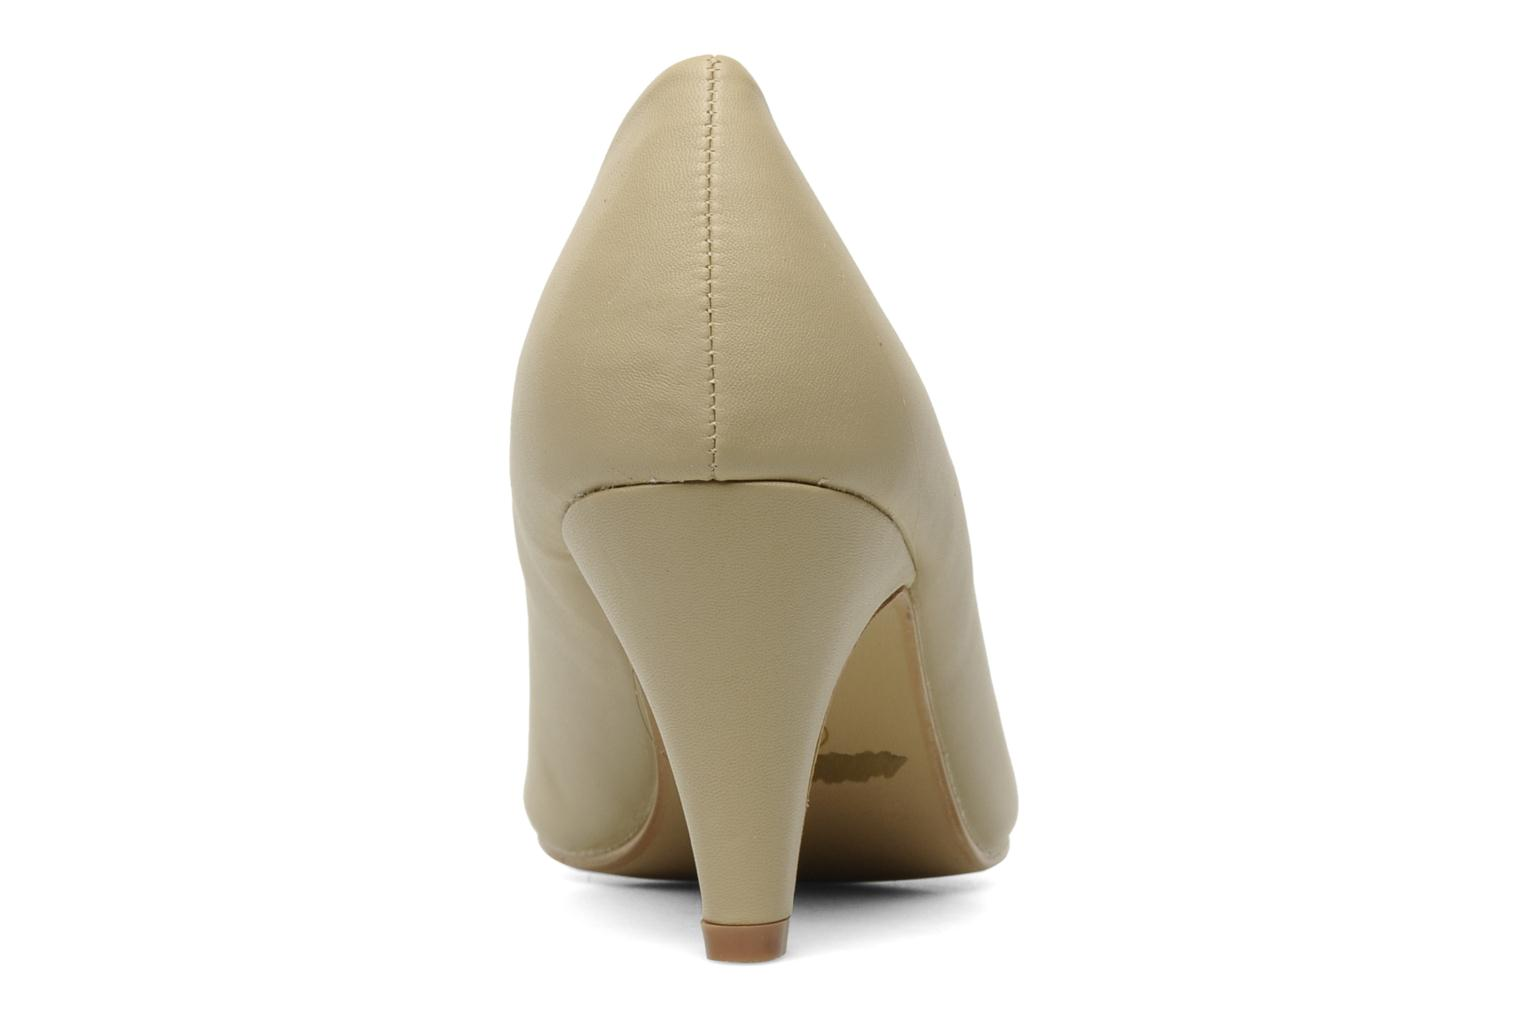 Pumps Eclipse Escarpin Moyen Talon Beige rechts